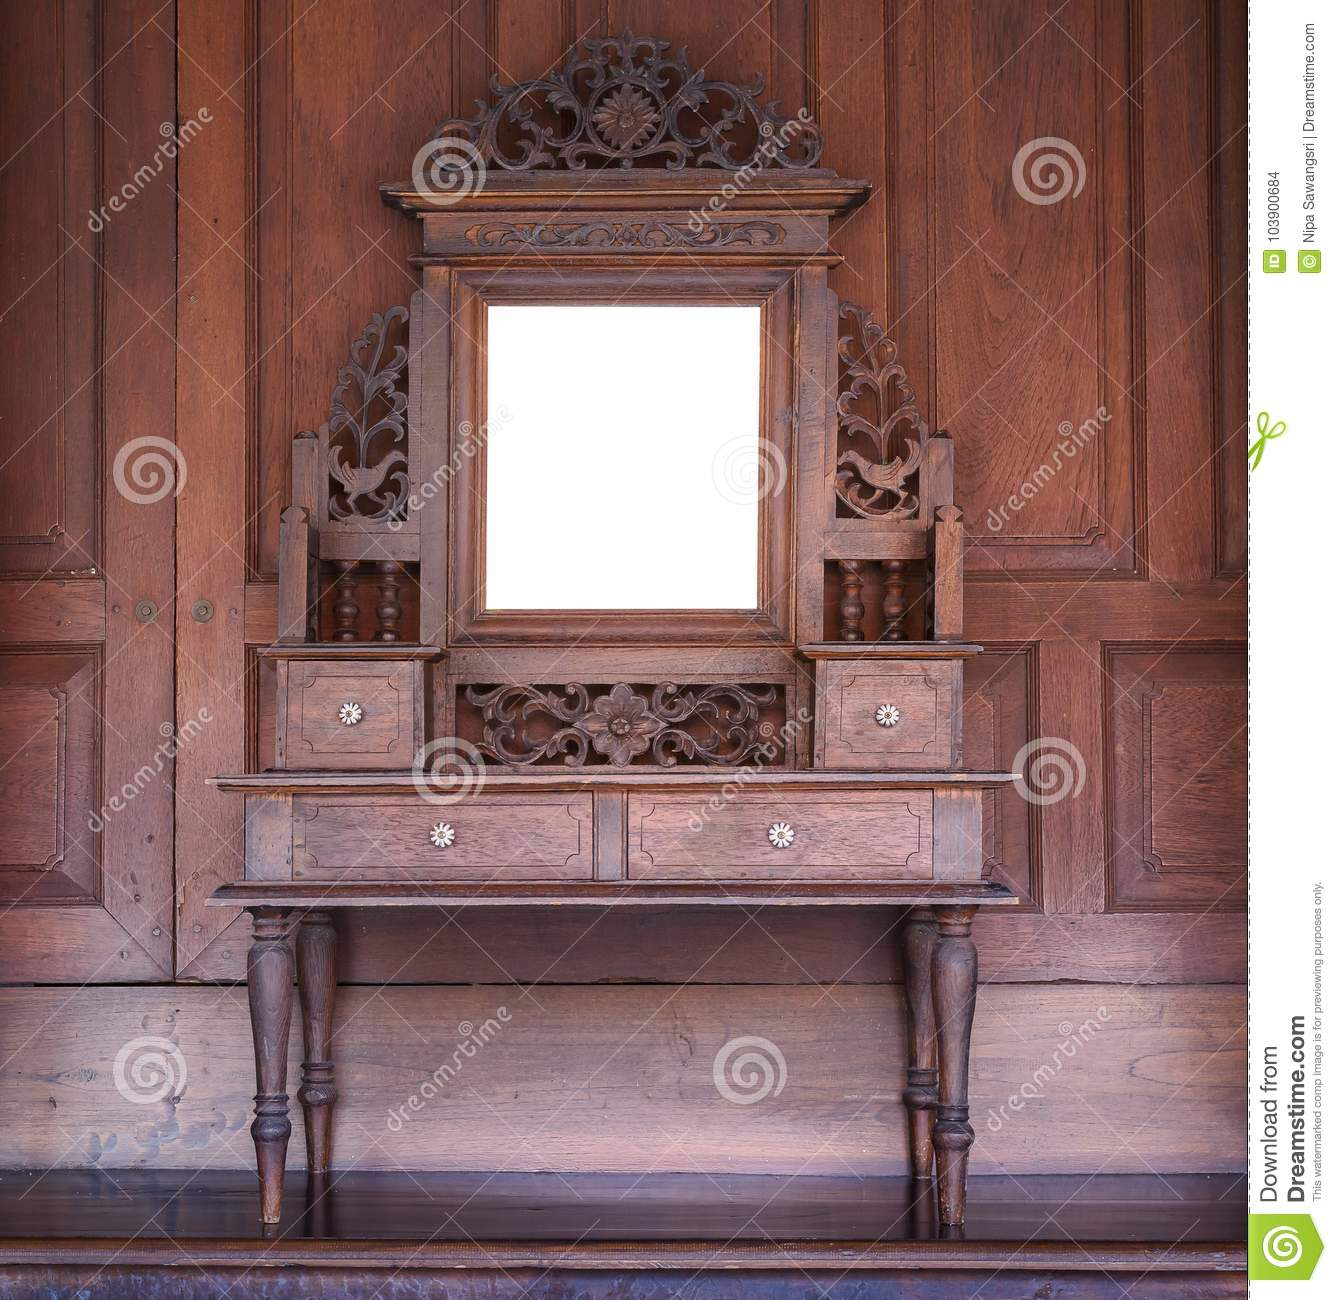 Remarkable Old Wooden Vanity In Old Thai House Style Stock Photo Download Free Architecture Designs Scobabritishbridgeorg